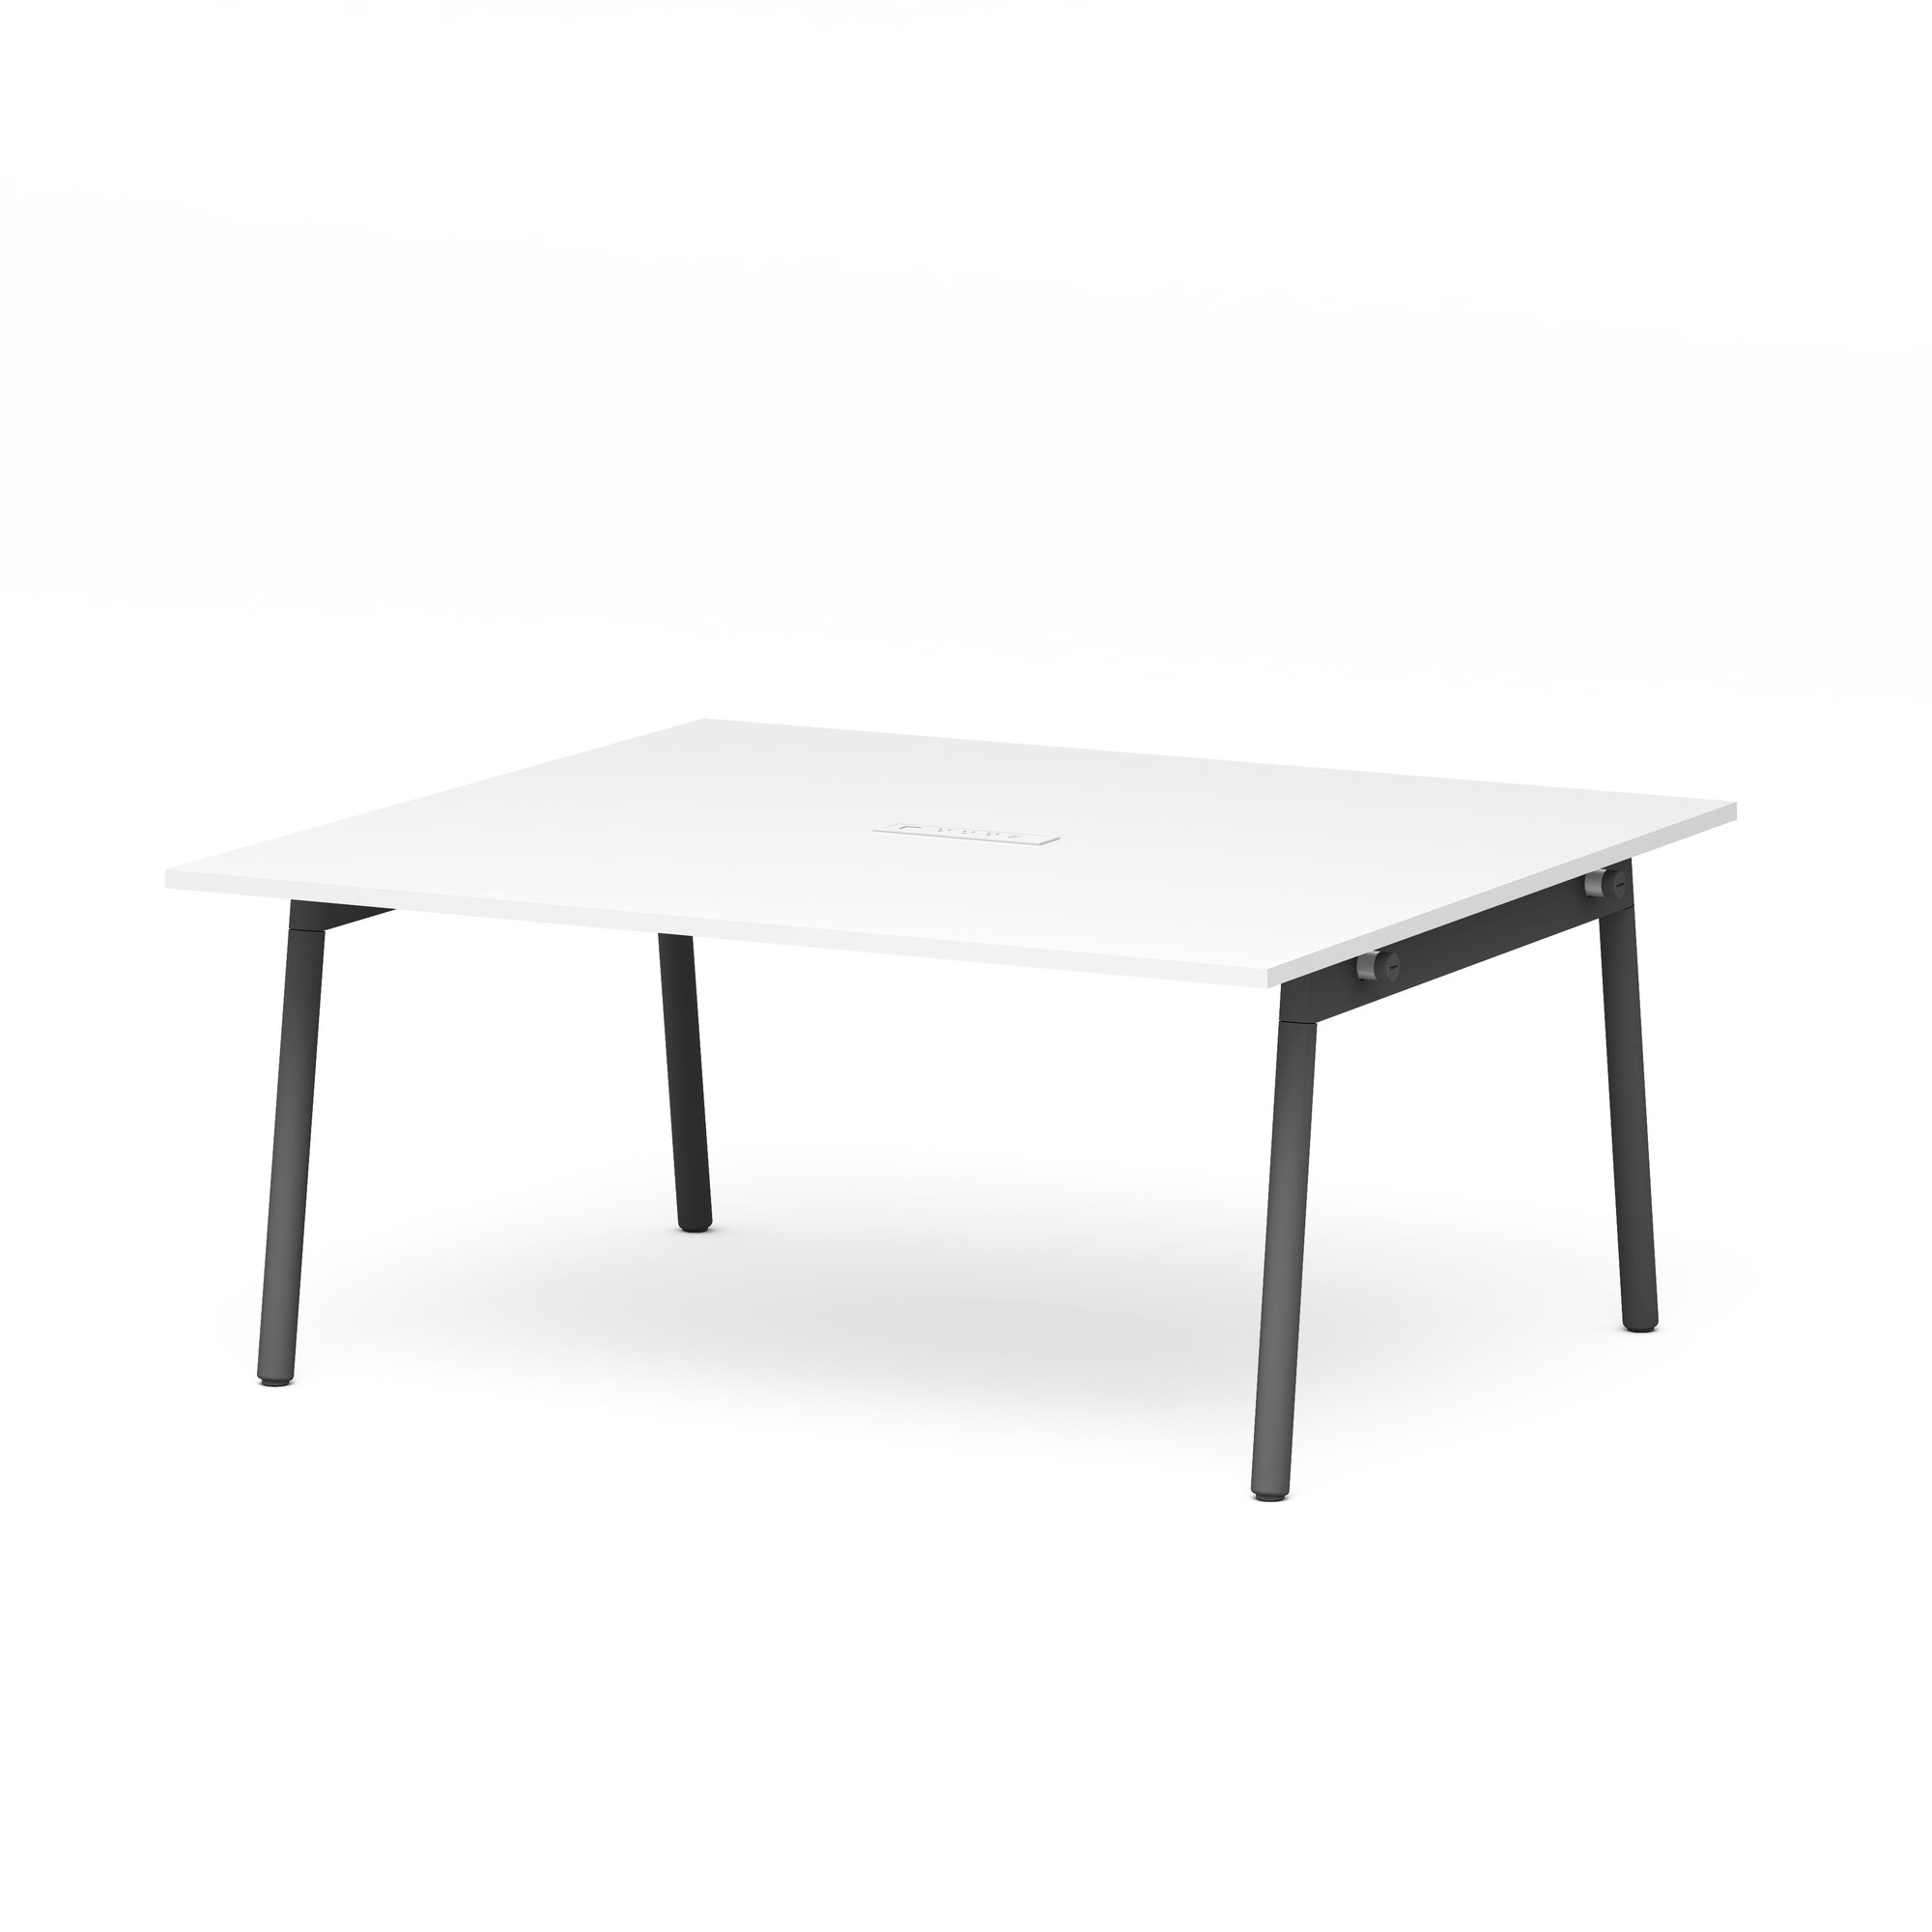 Series A Scale Rectangular Conference Table, Charcoal Legs  Conference  Tables  Poppin